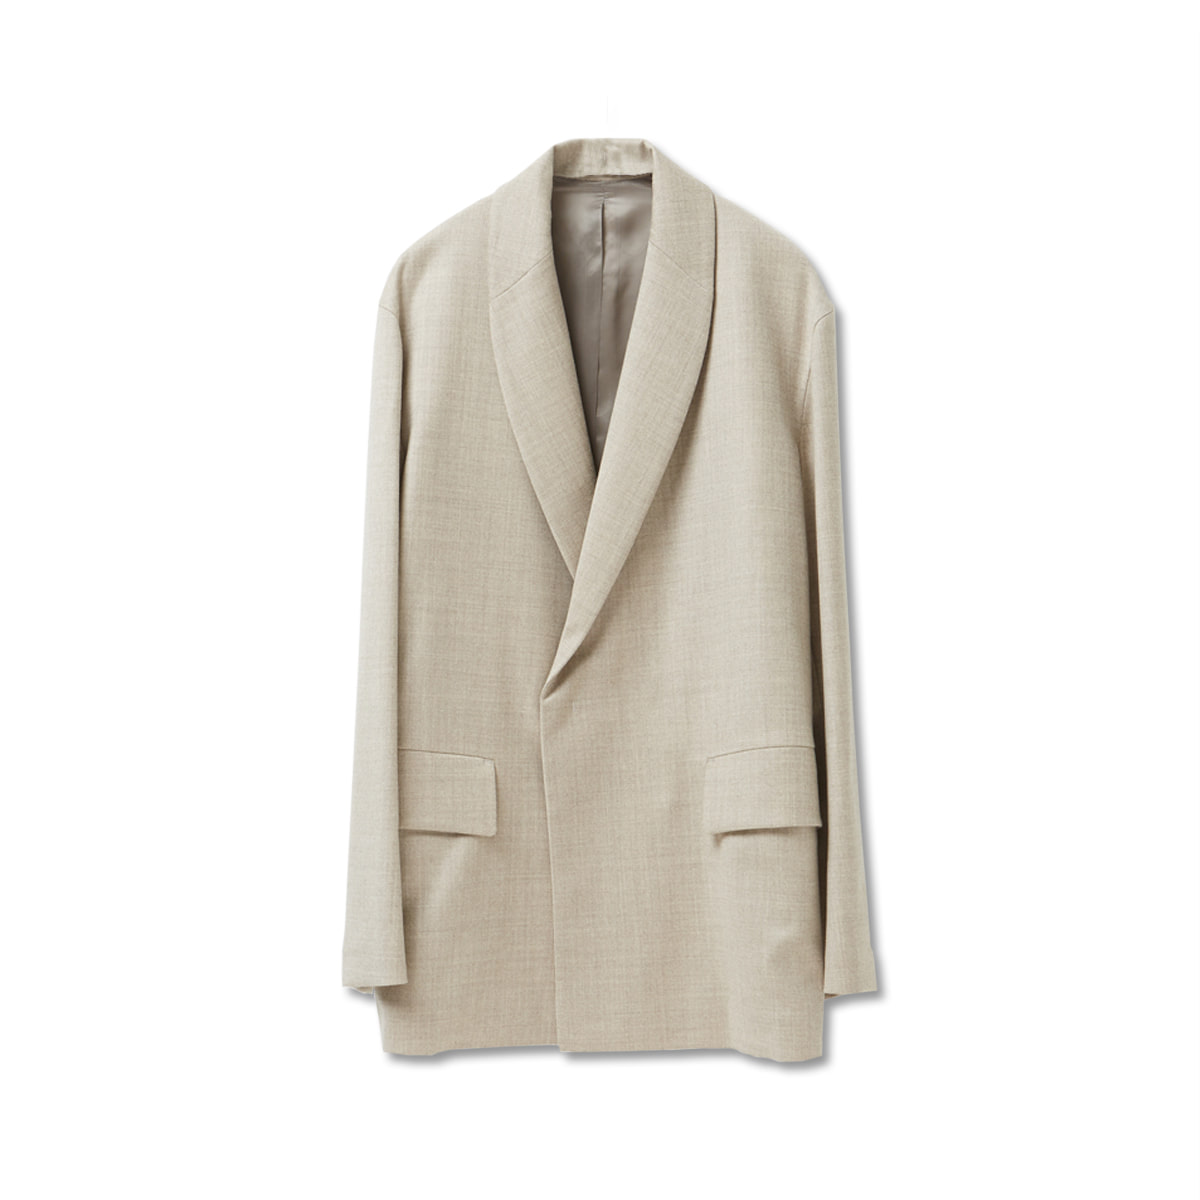 [YOUTH] SHAWL COLLAR JACKET 'BEIGE'